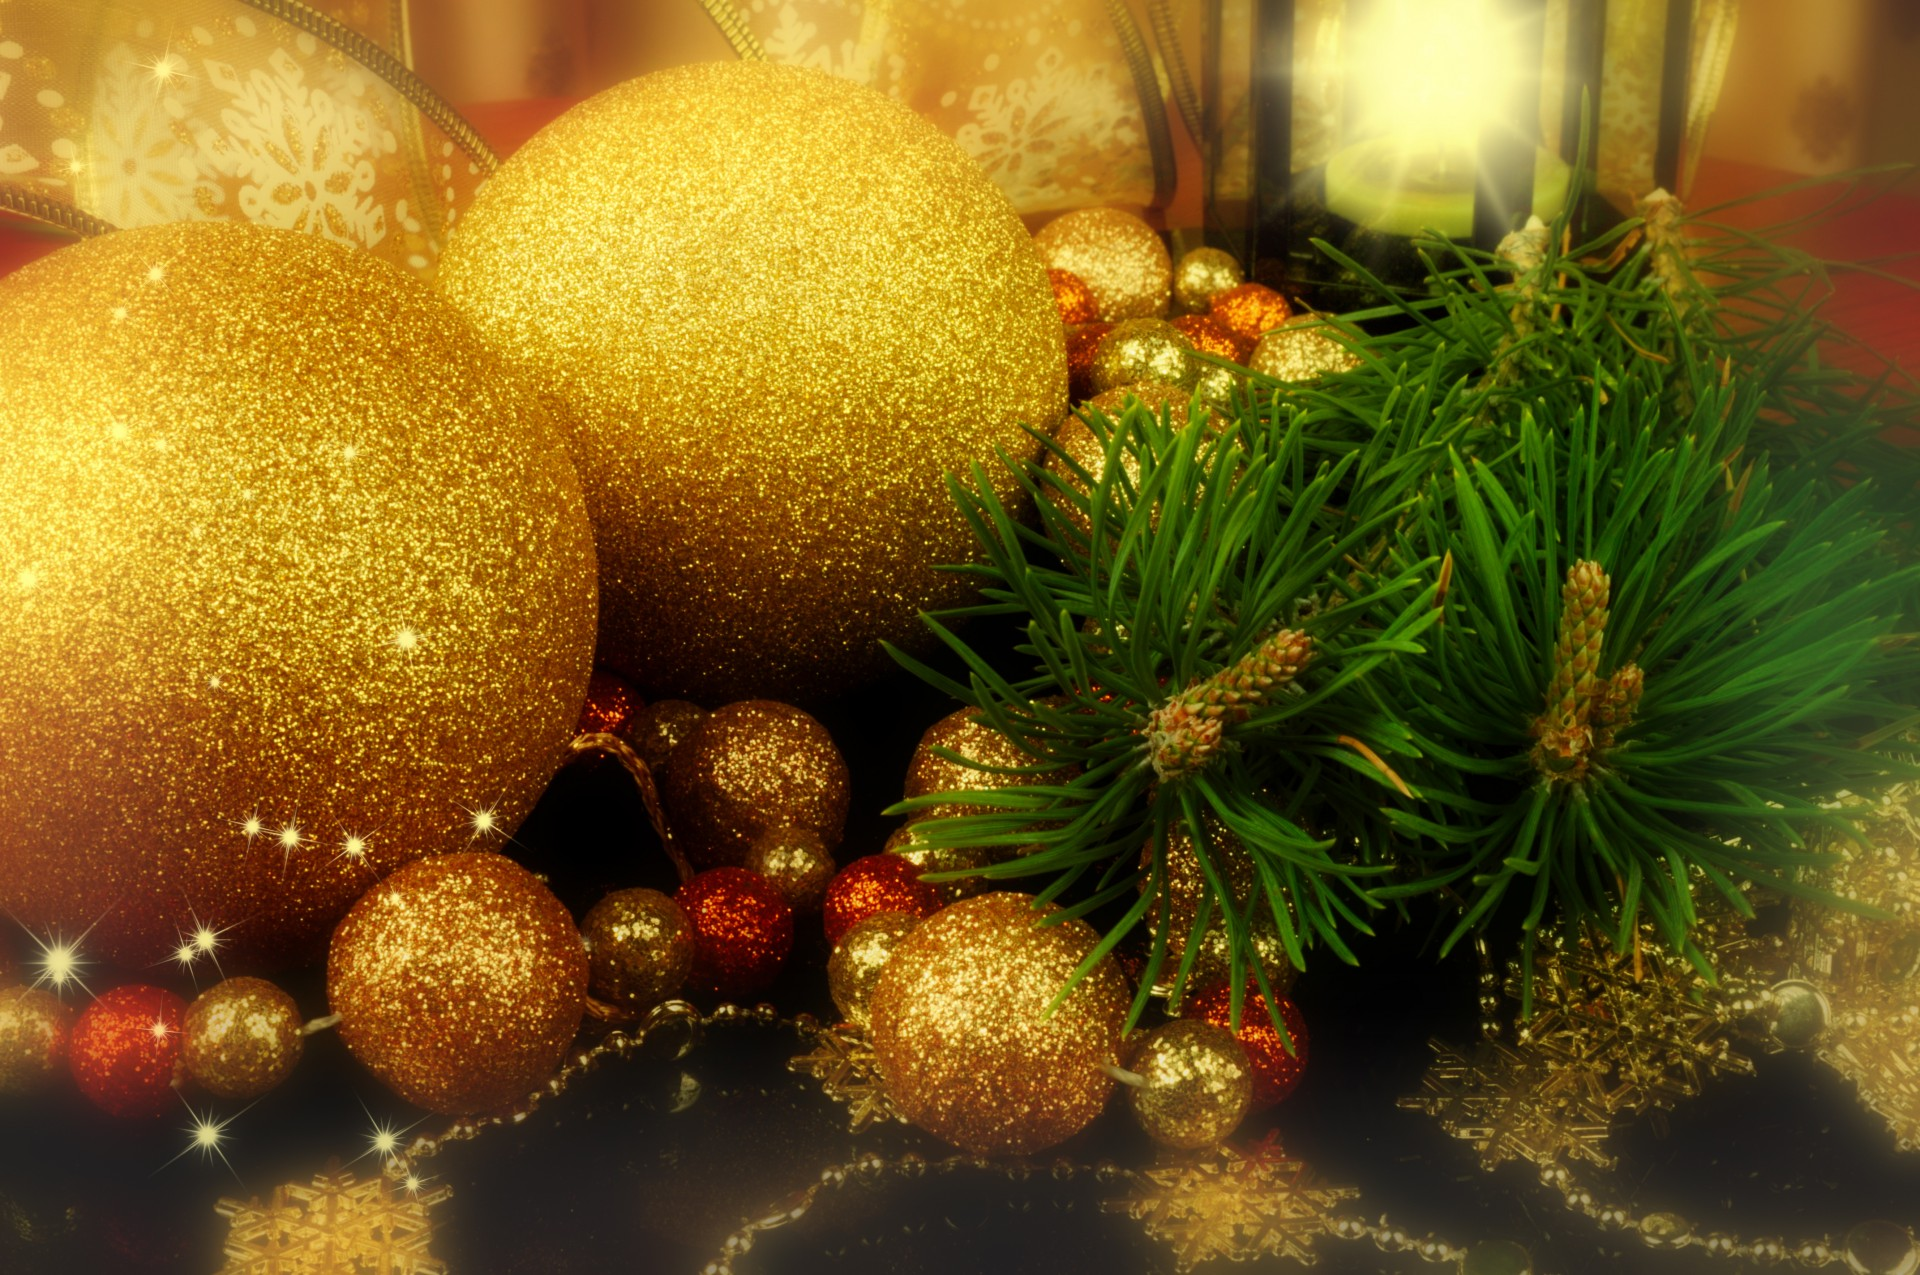 Shutterstock Hd Wallpapers Christmas Background Free Stock Photo Public Domain Pictures